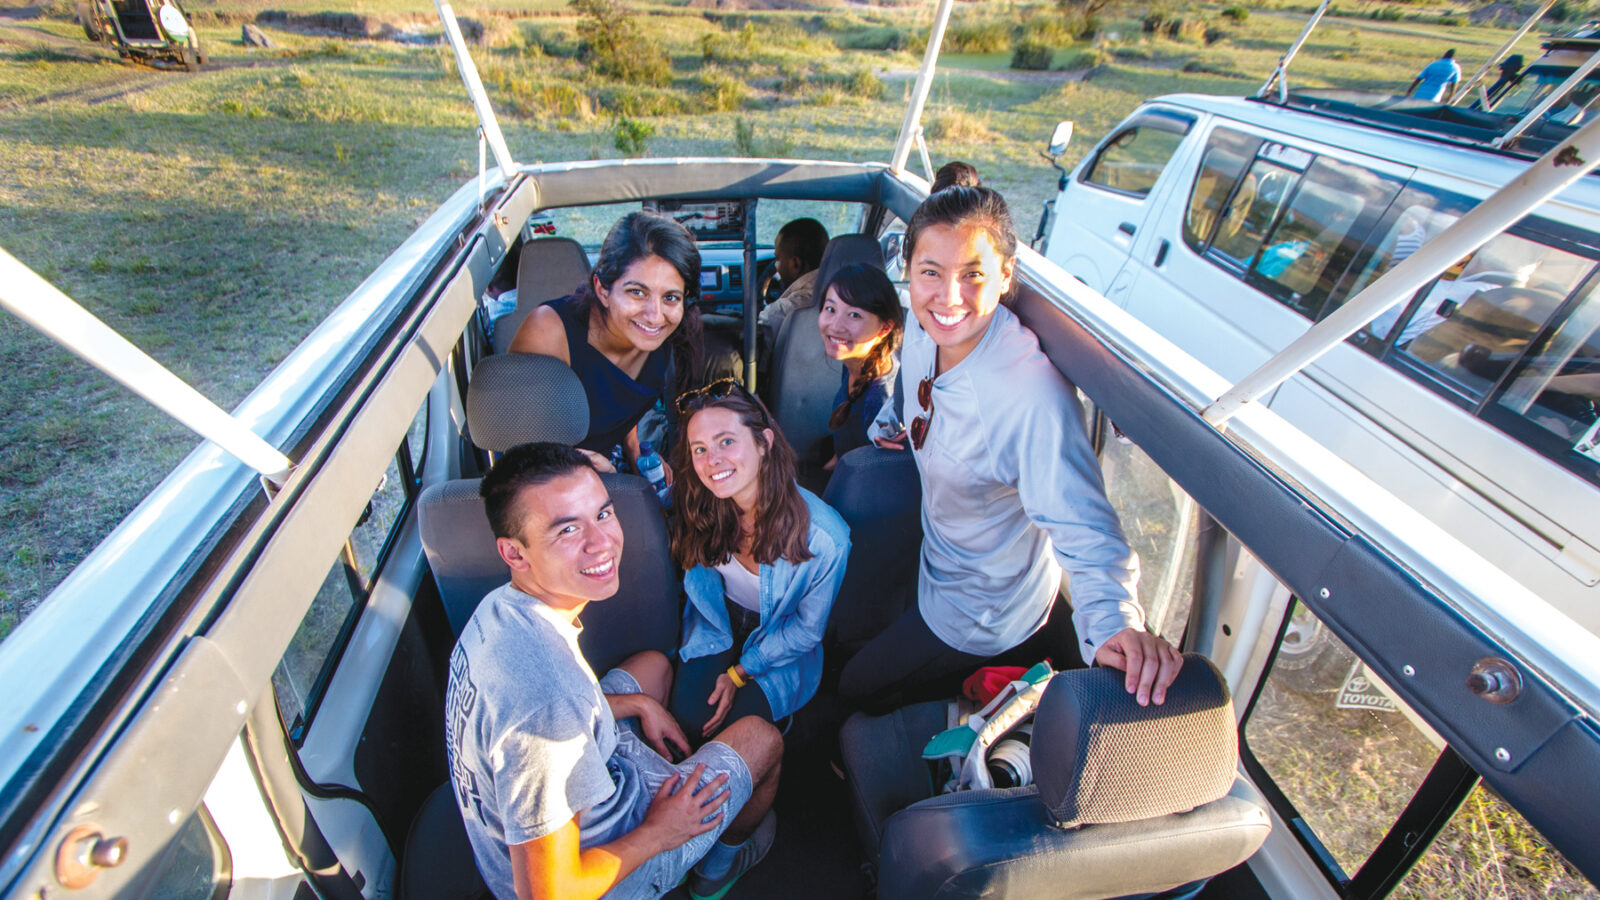 Nguyen and his Georgetown classmates traveled to Kenya to assist economics professor William Jack with a road safety project